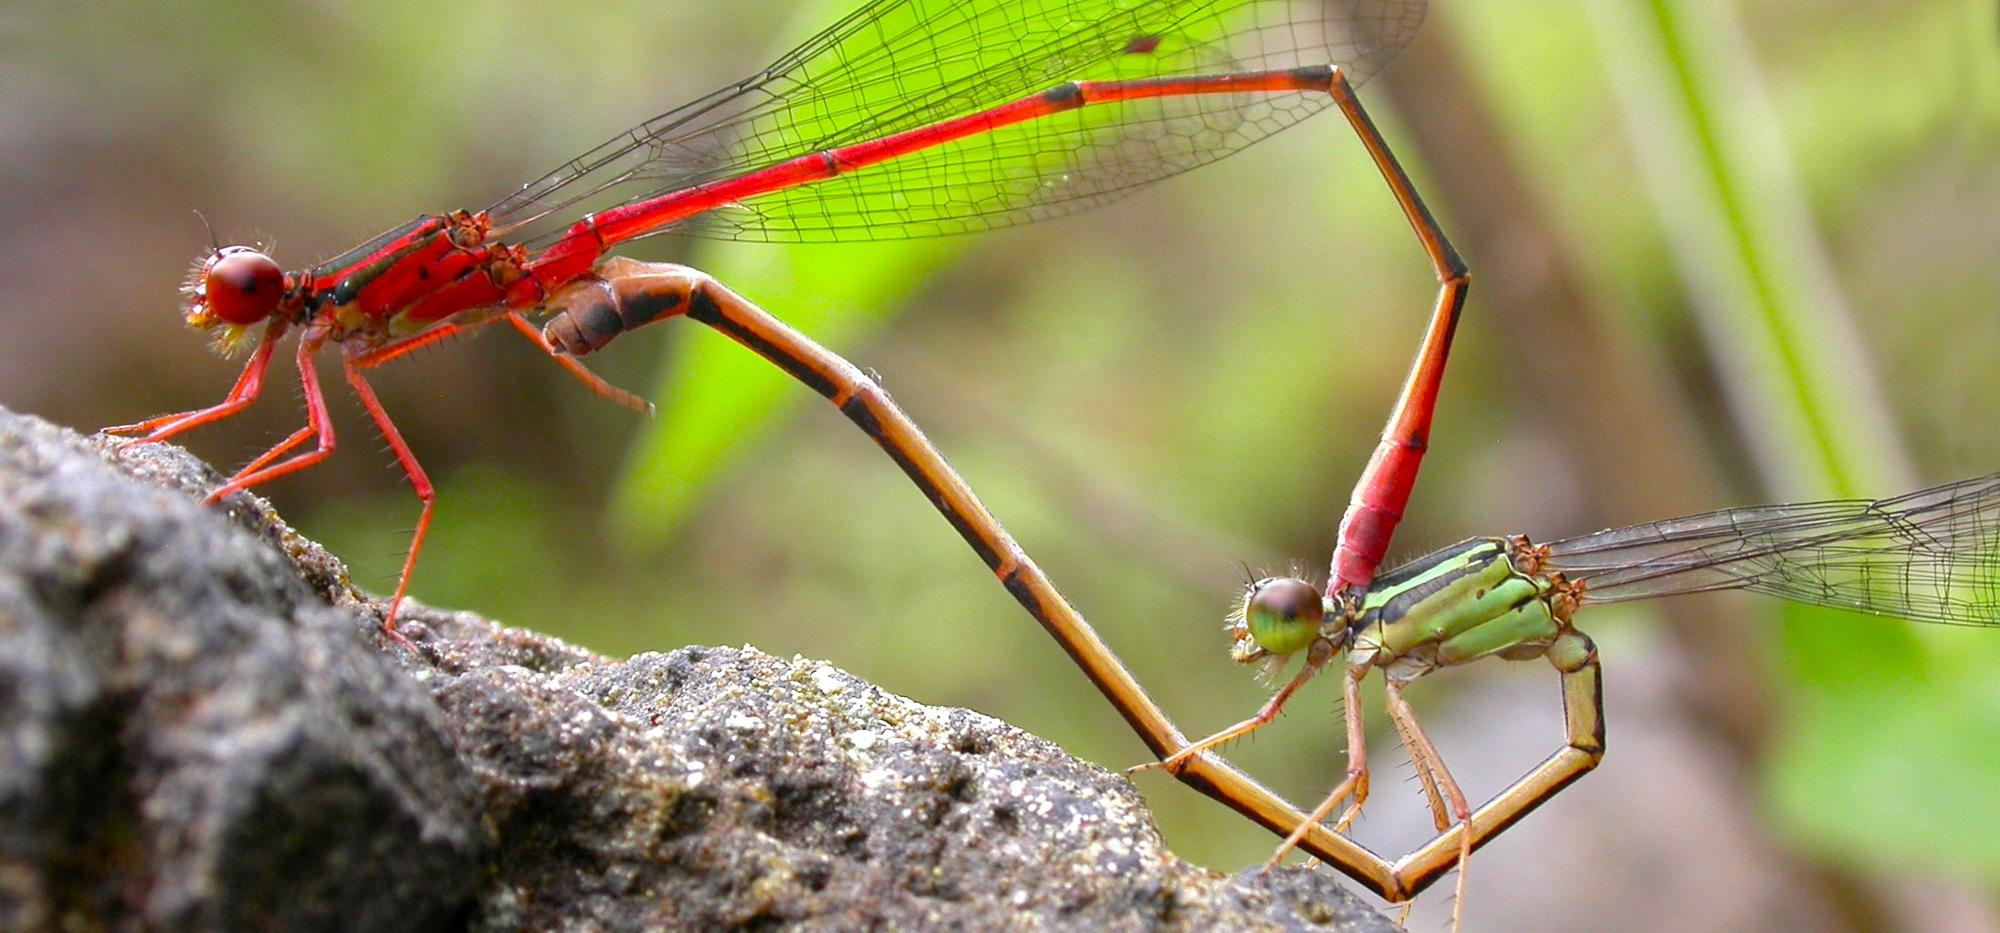 Damselflies mating, one red, the other drab